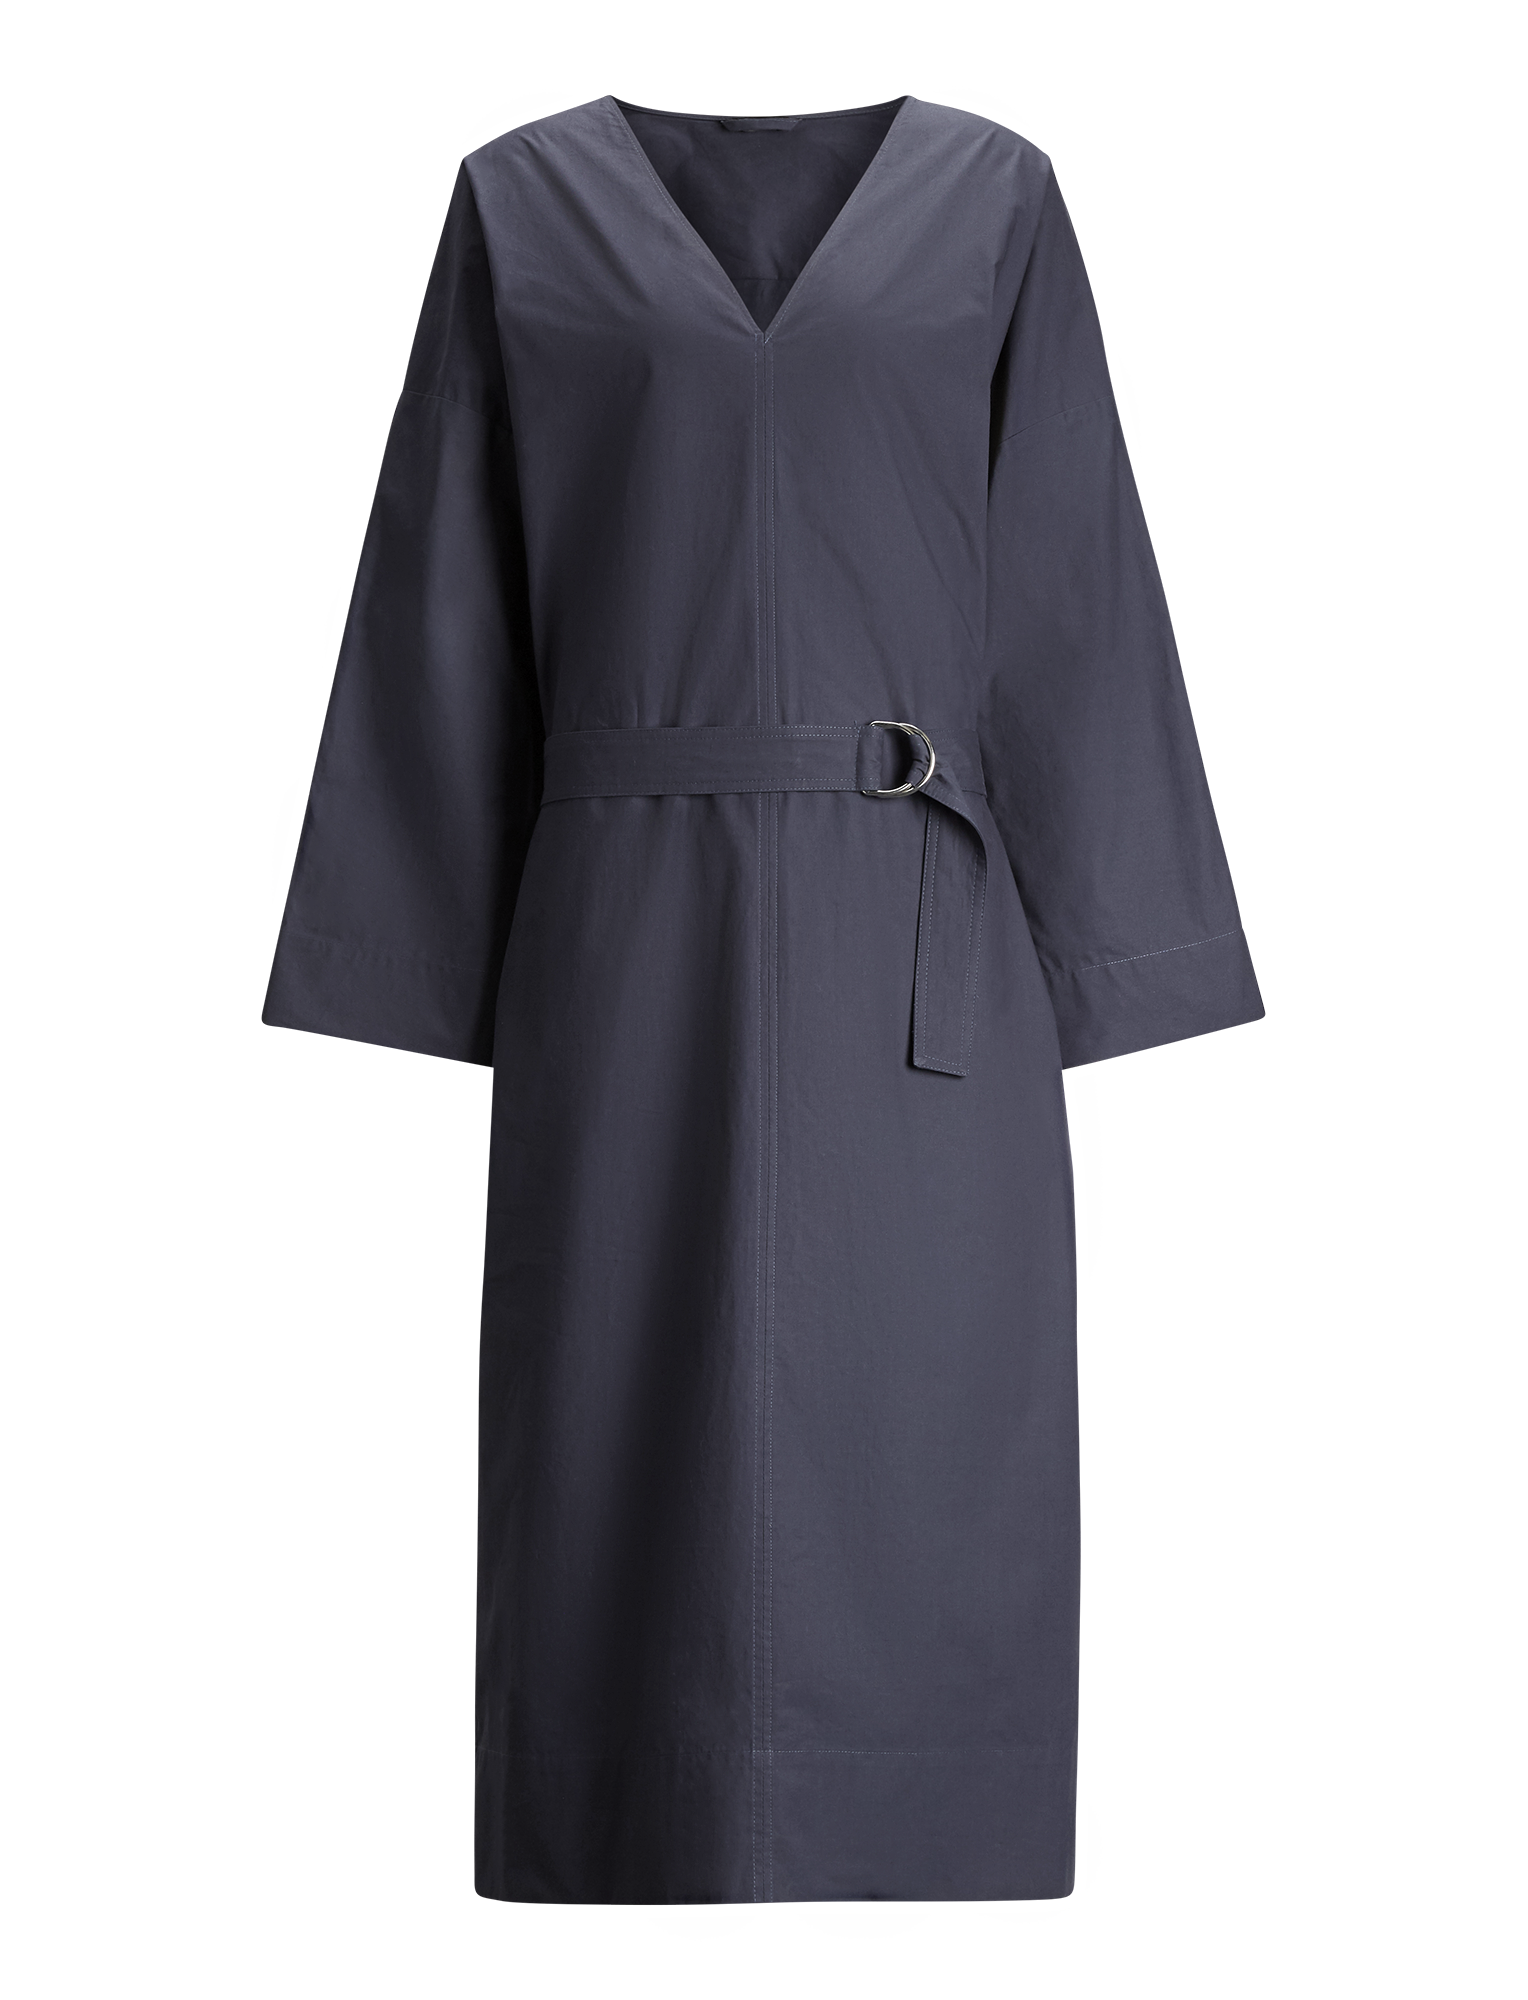 Joseph, Etta Cotton Poplin Dress, in NAVY